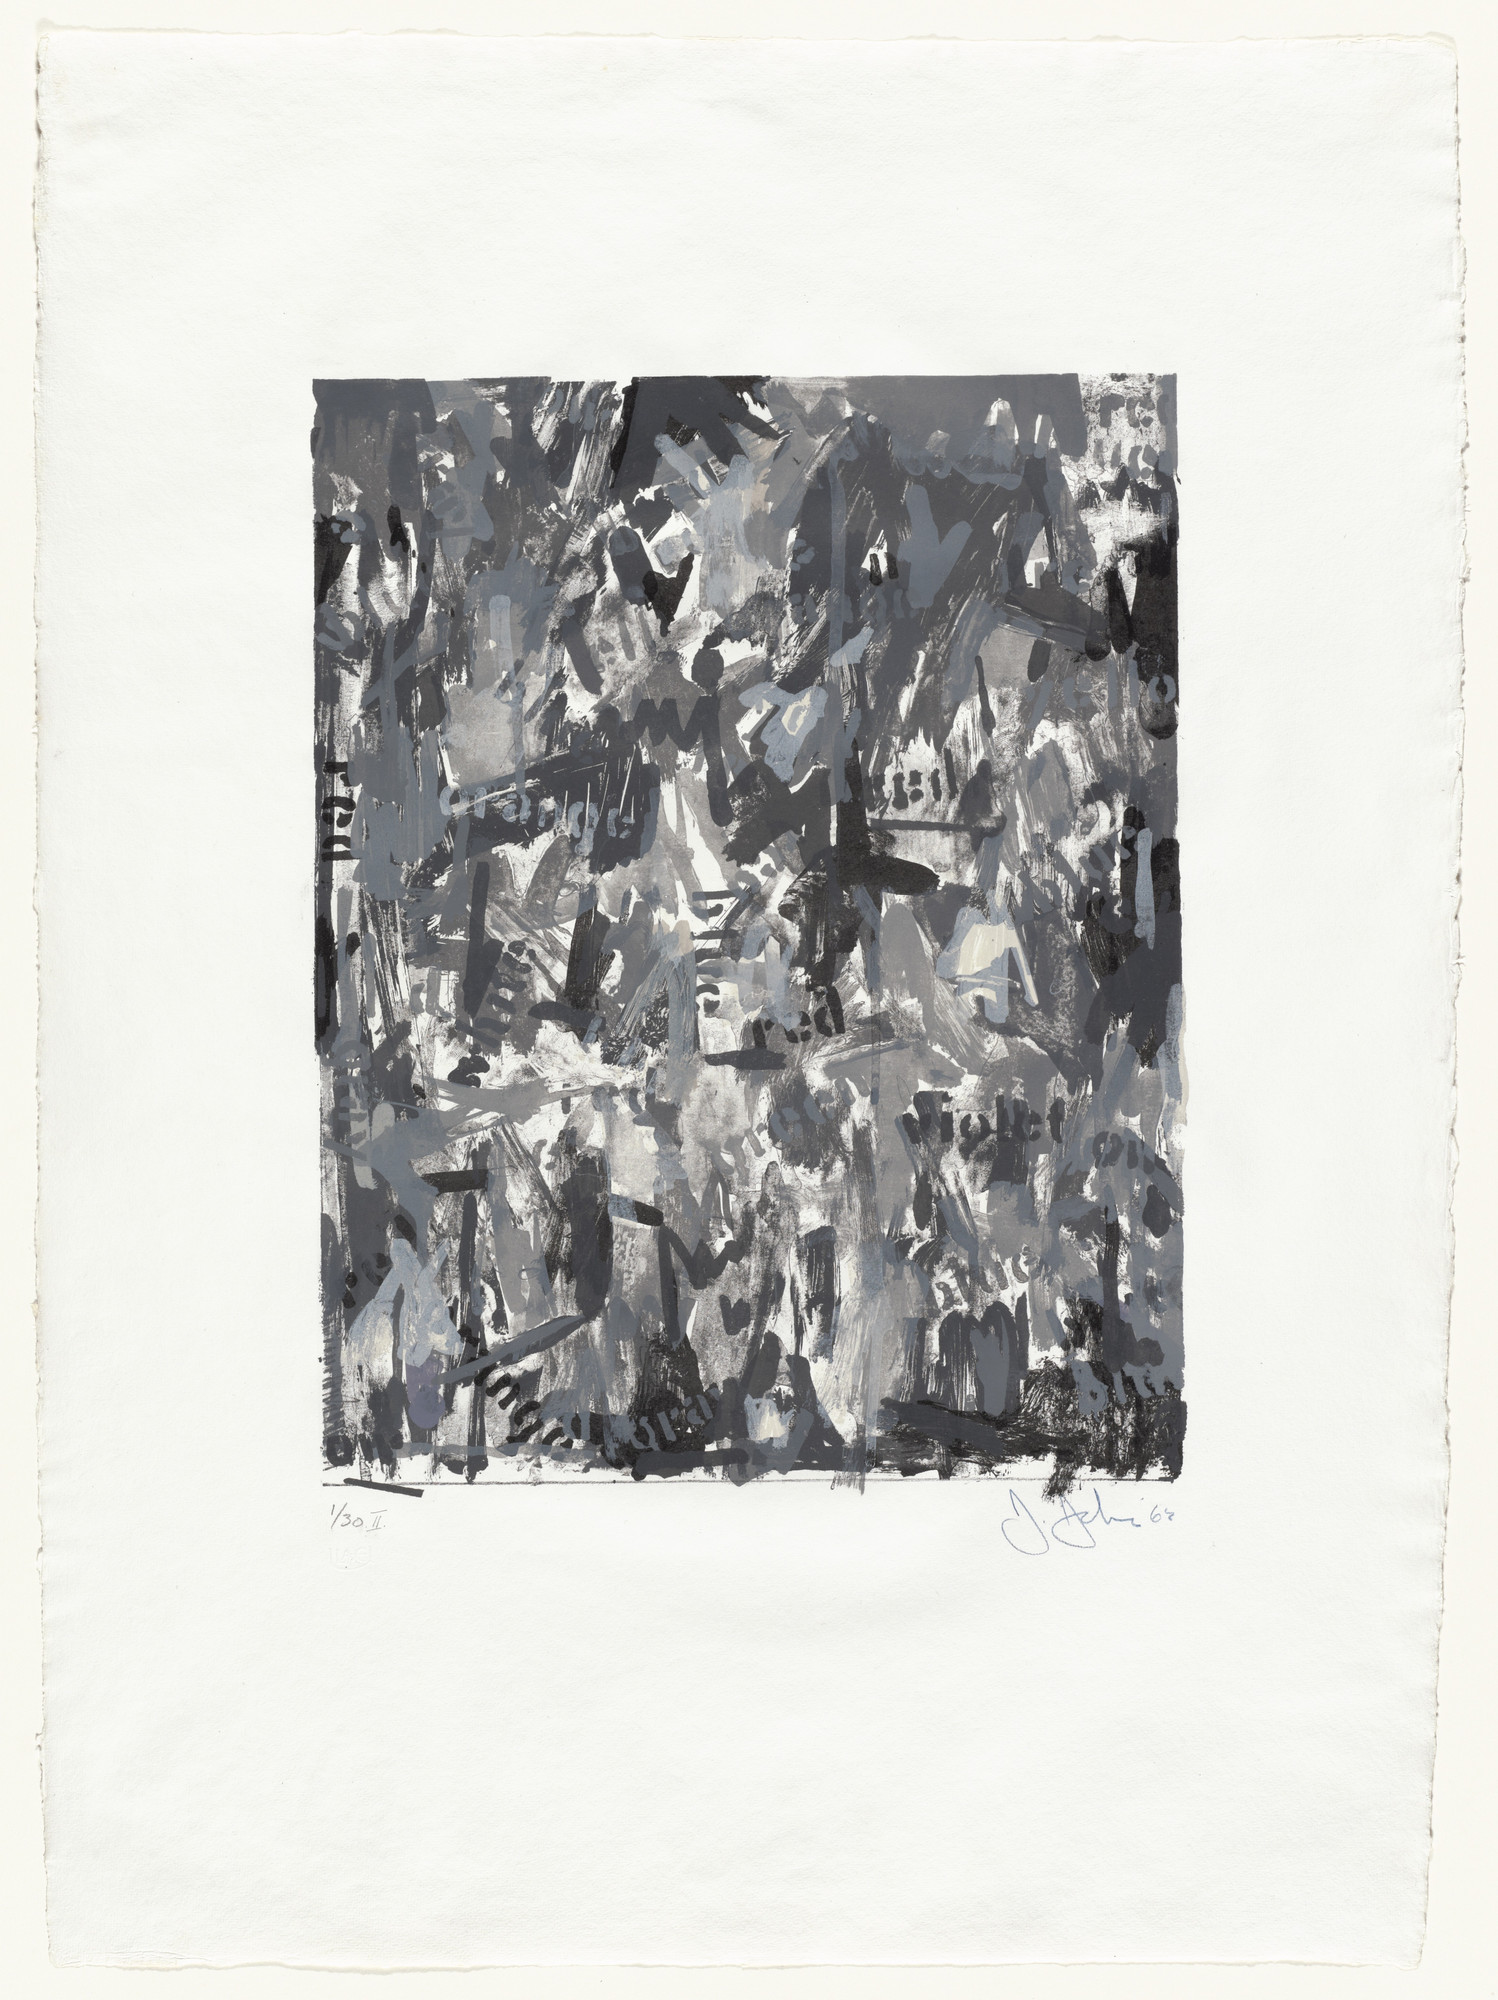 Jasper Johns. False Start II. 1962